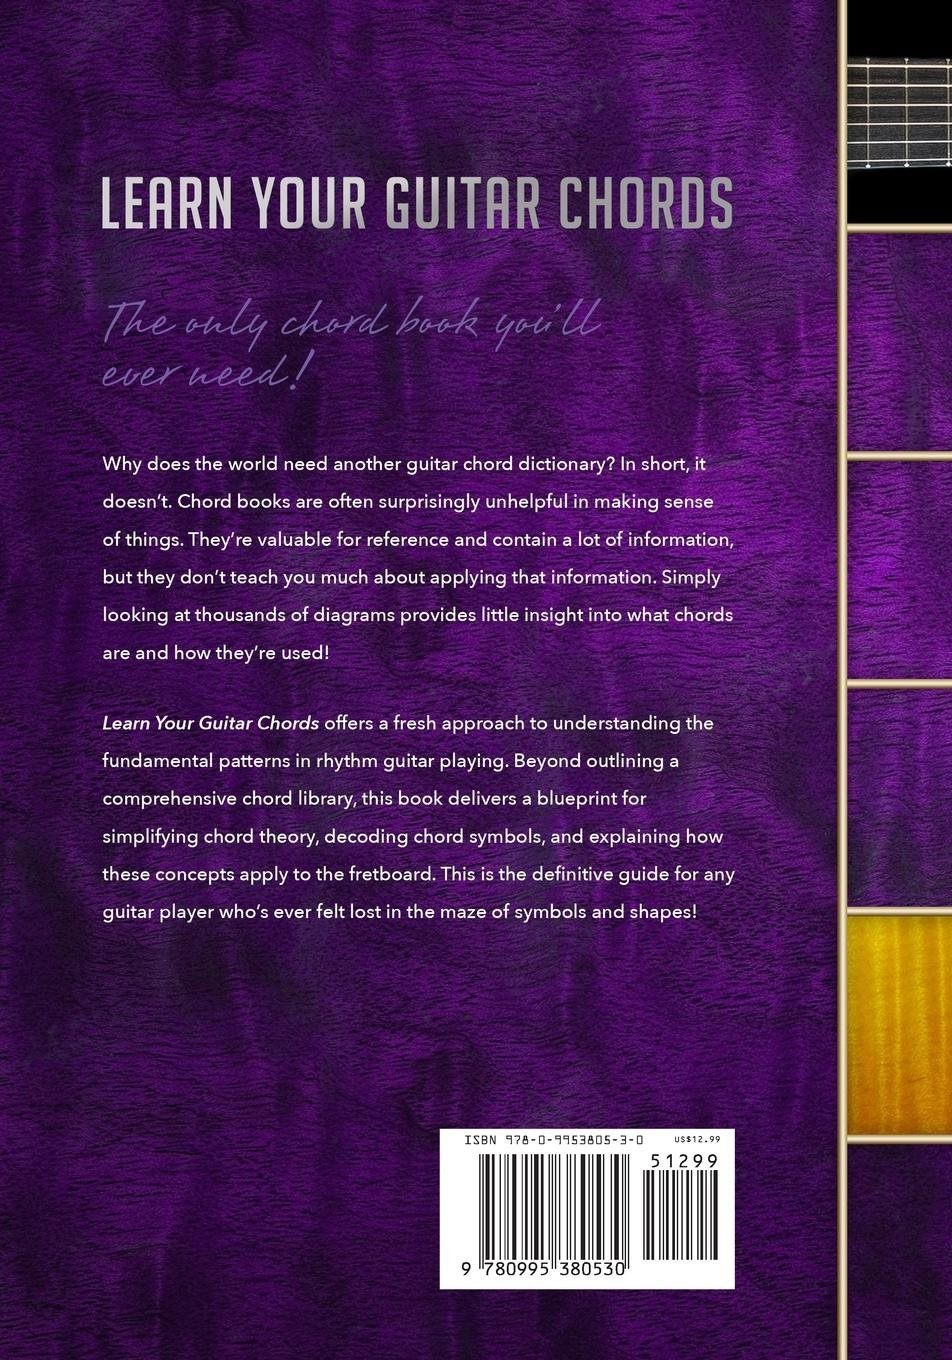 Learn Your Guitar Chords Chord Charts Symbols Shapes Explained